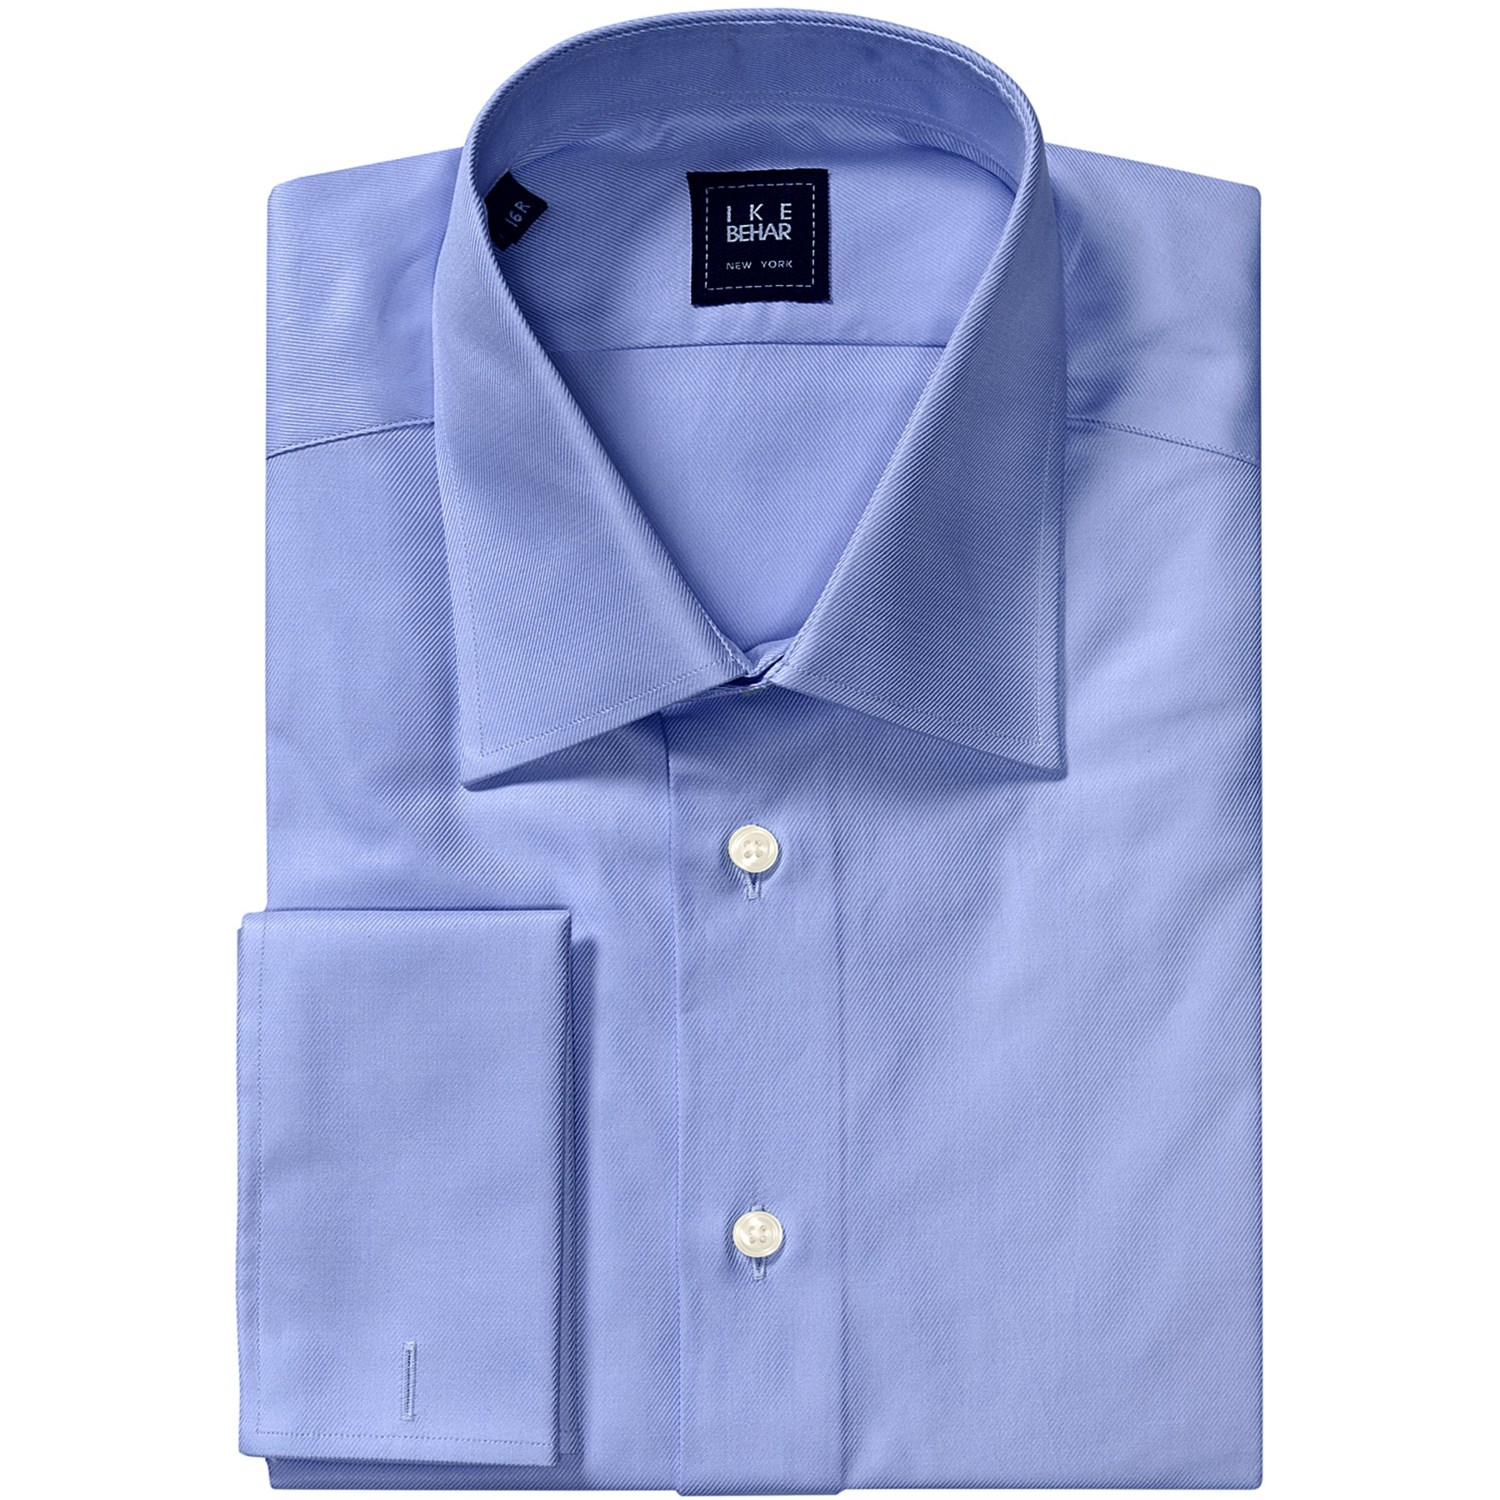 Ike Behar Shirts Mens White Dress Shirts Clothing From